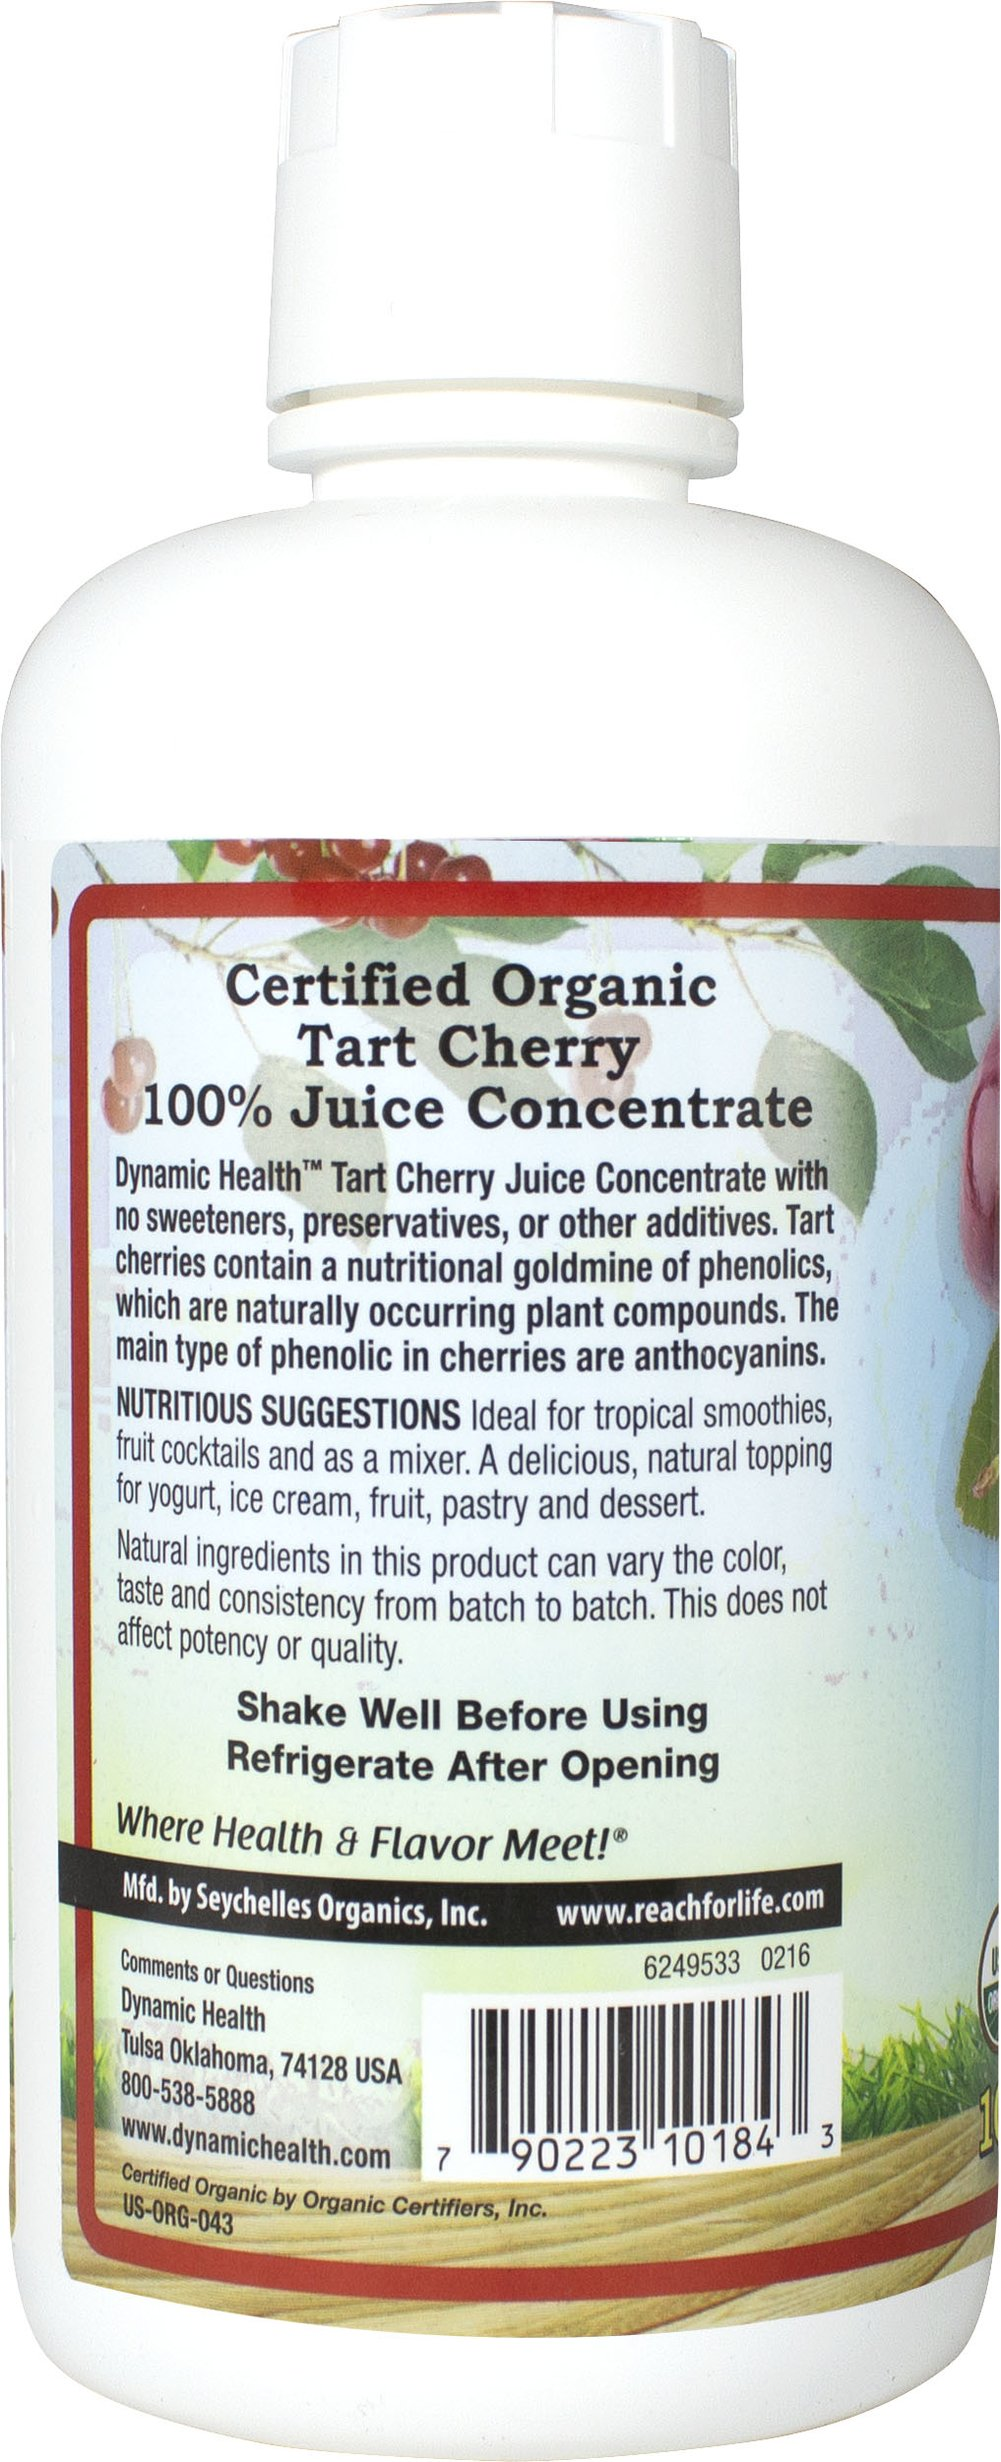 Organic Tart Cherry Juice Concentrate Thumbnail Alternate Bottle View